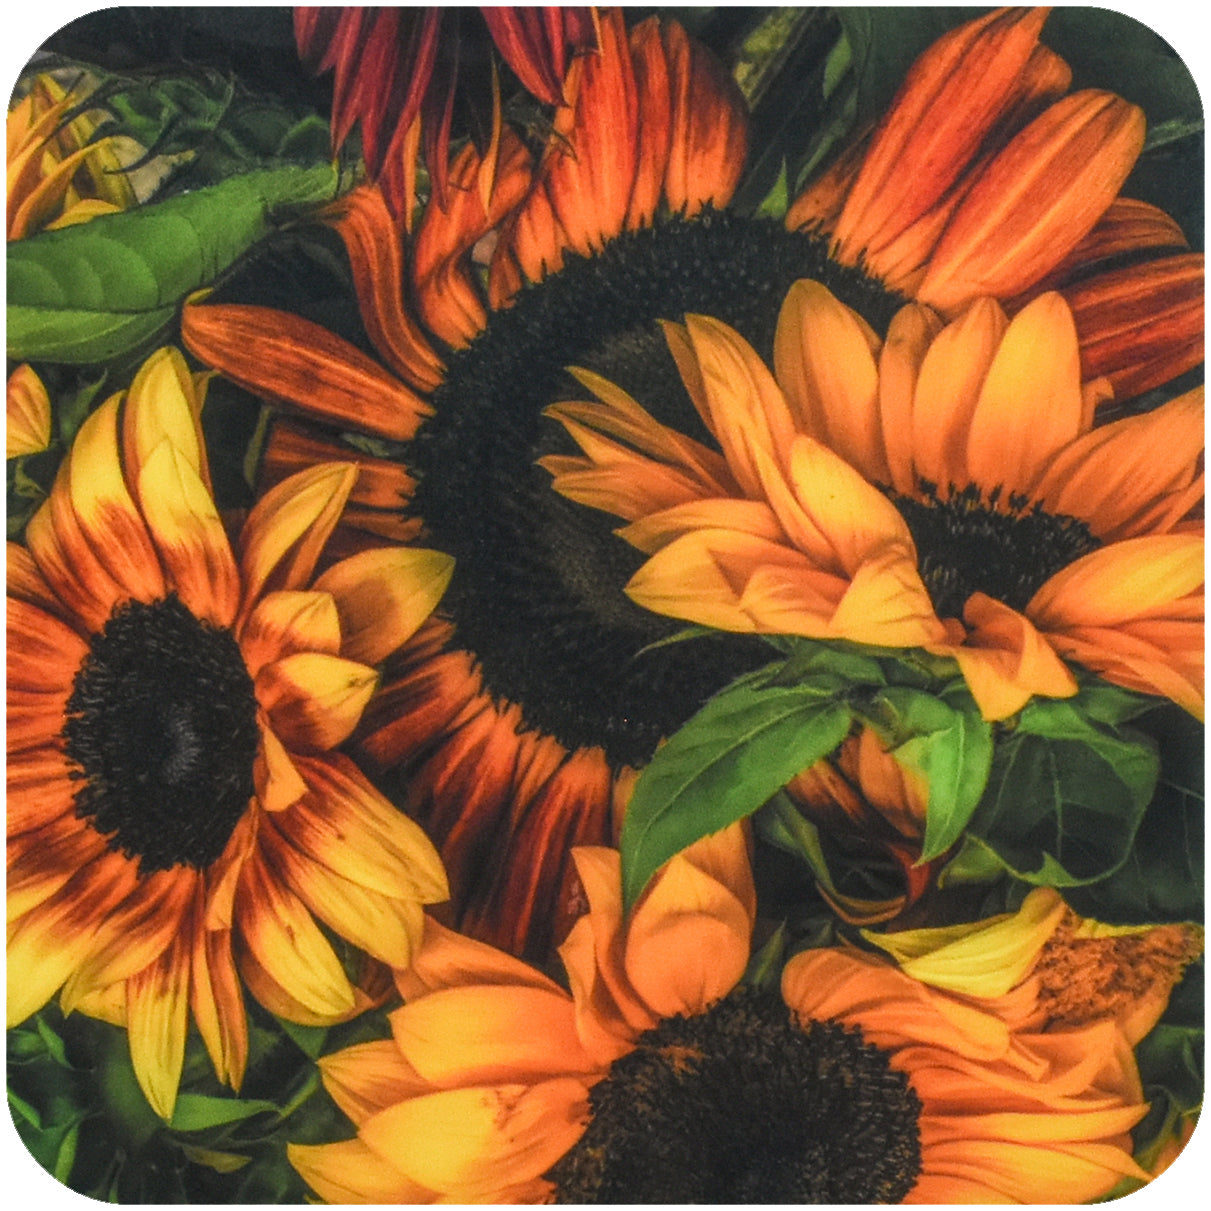 Thousand Suns Sunflower Coaster - Wear the Wonder